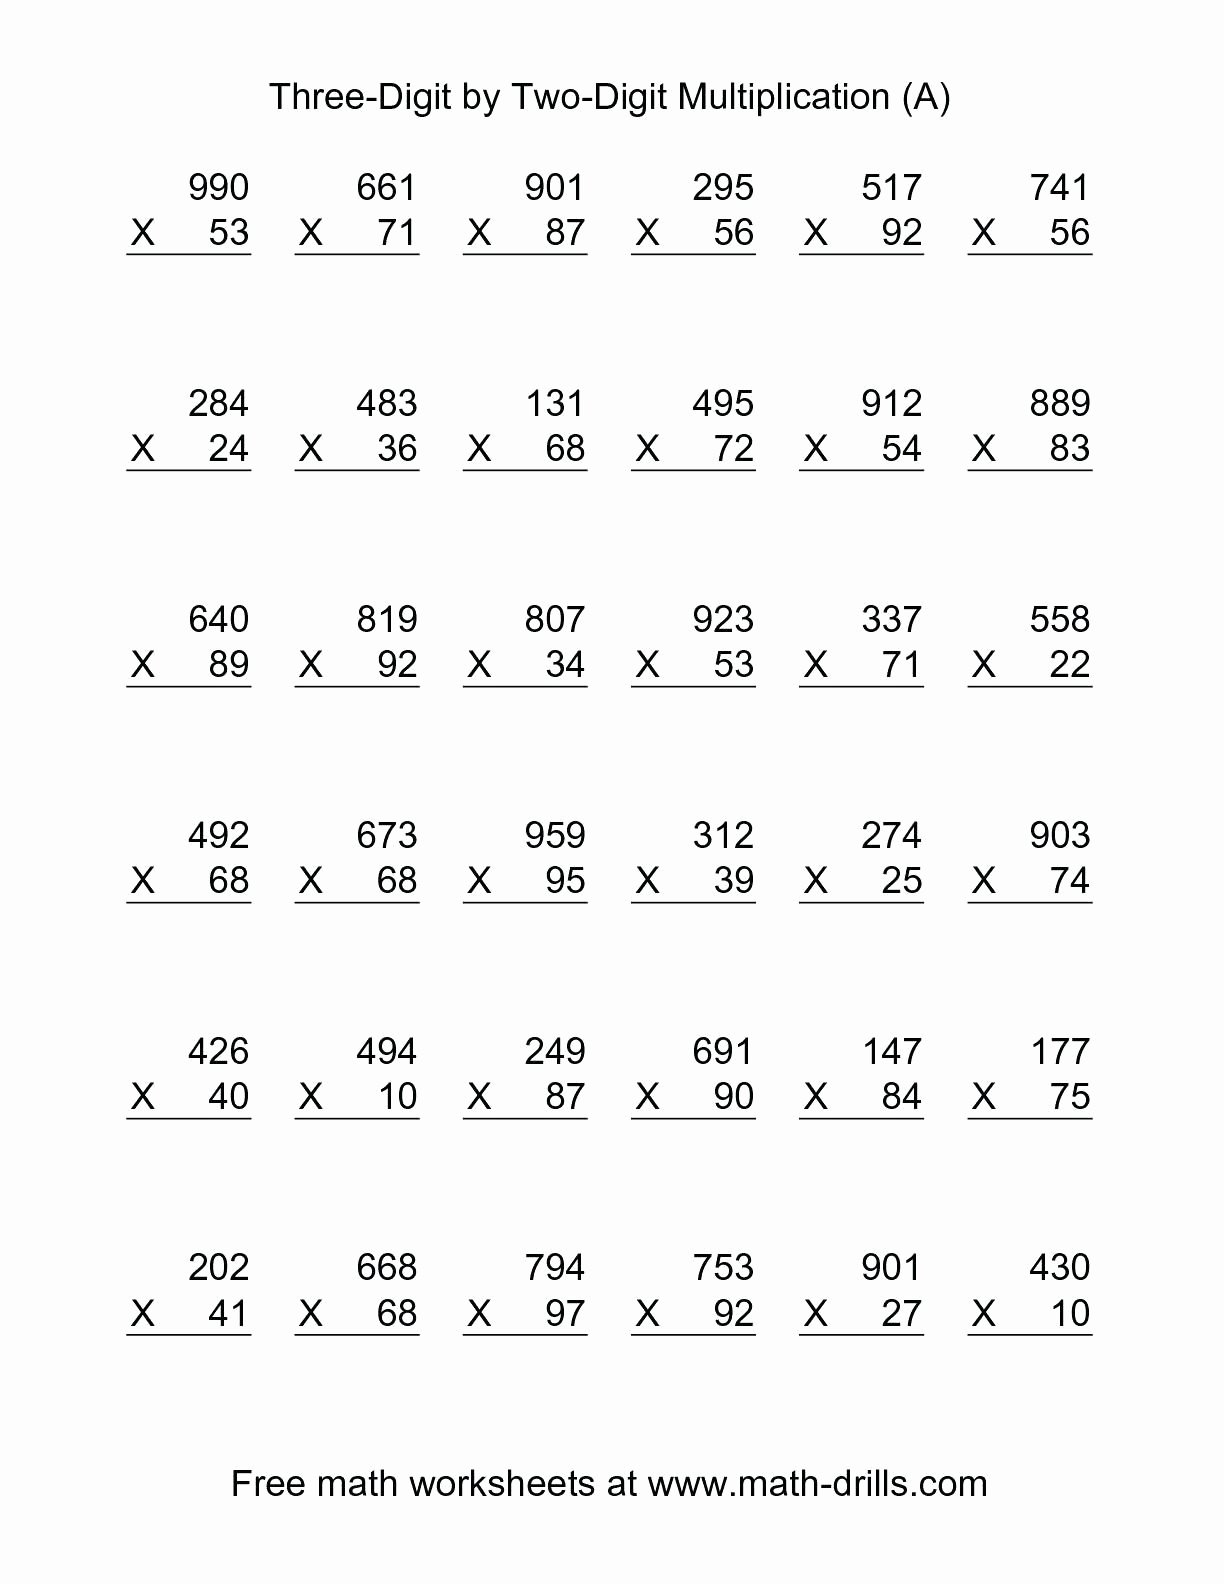 Free Printable Multiplication Worksheets 5th Grade Best Of 5th Grade Multiplication Worksheets for Printable In 2020